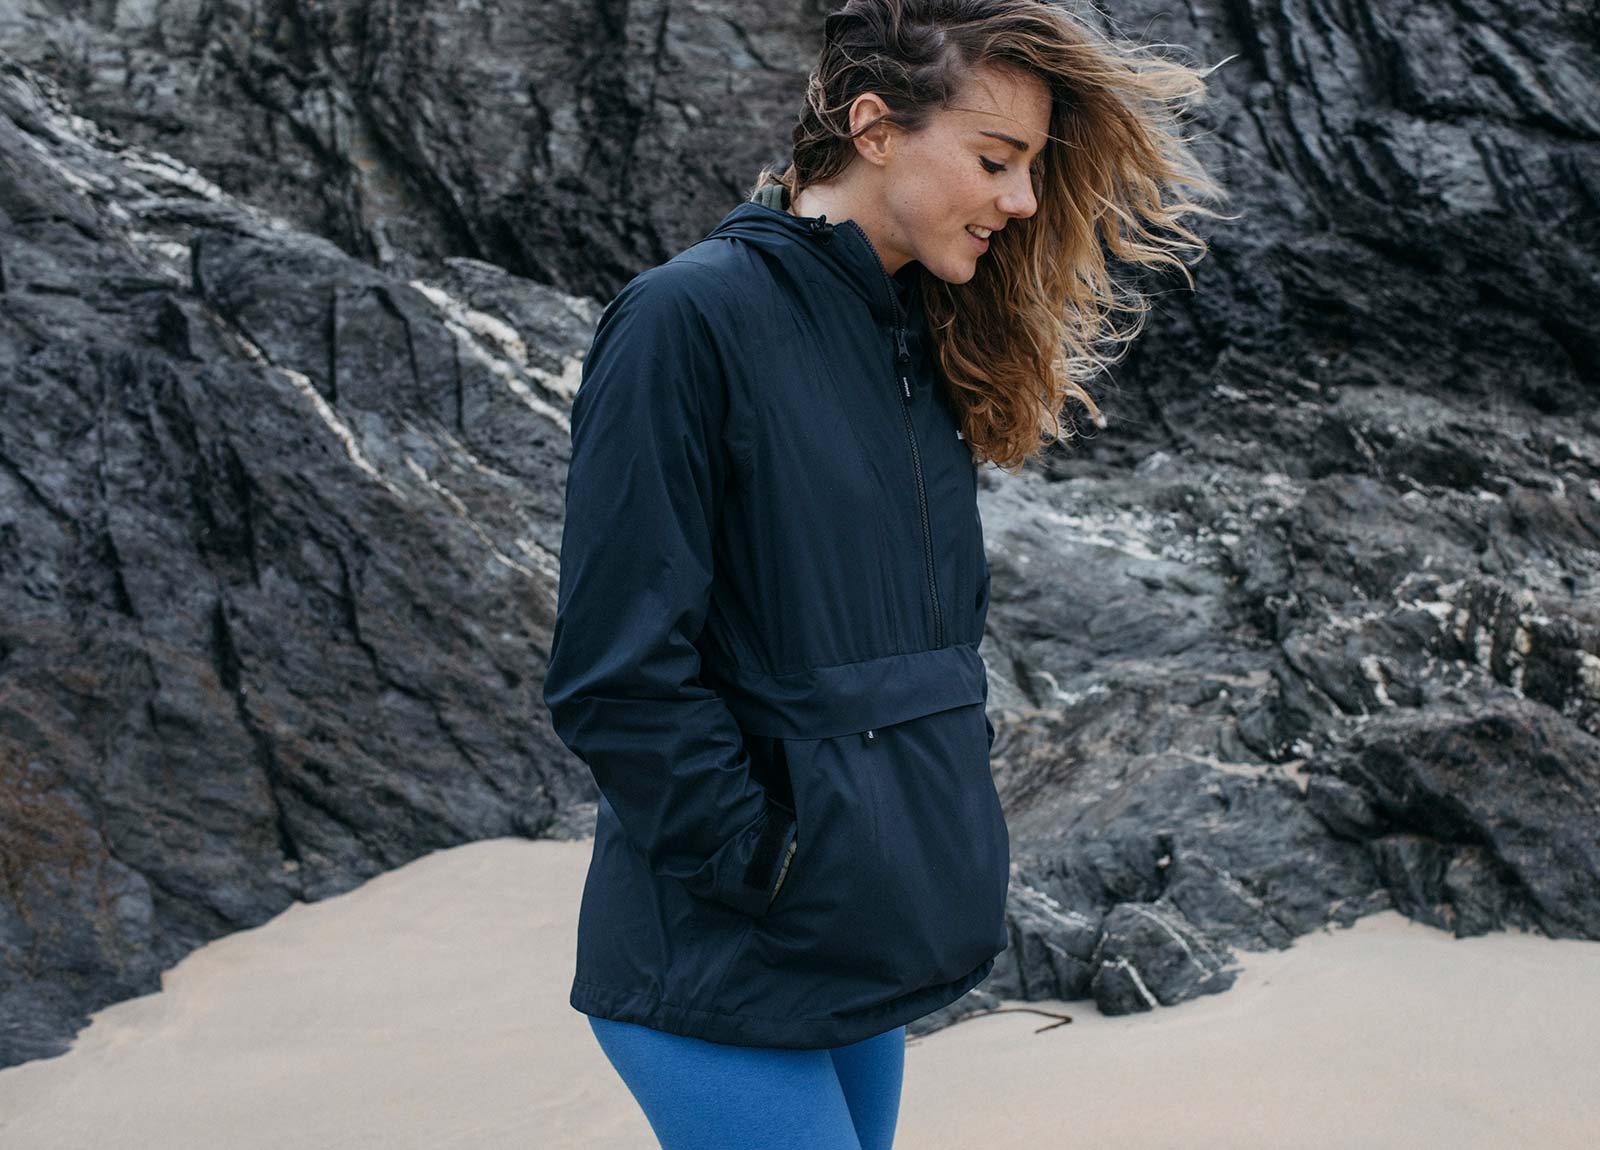 Premium matte fabric has a touch of stretch making the Rainbird perfect for running and cycling.